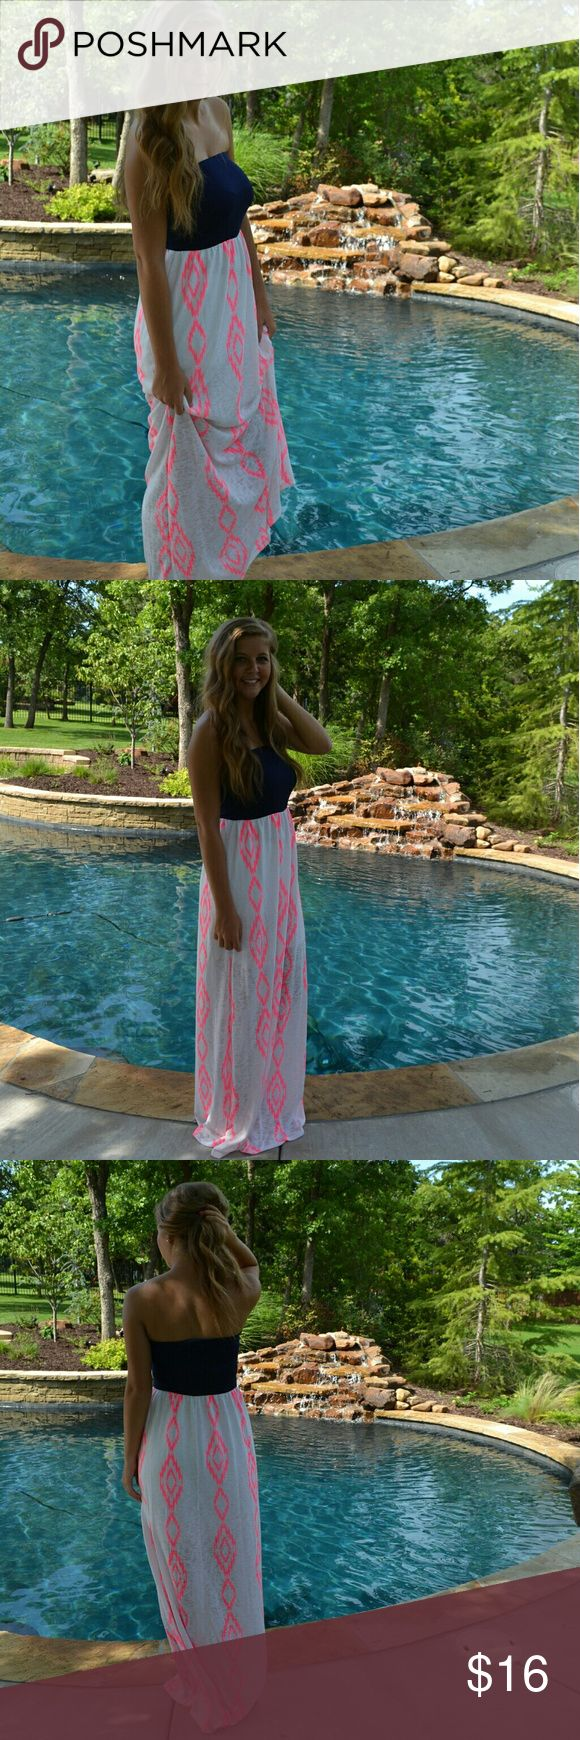 Neon Aztec Summer Dress Gorgeous print and gorgeous material. You cannot go wrong with adding this dress to your summer wardrobe. Fits true to size. Brand new. Dresses